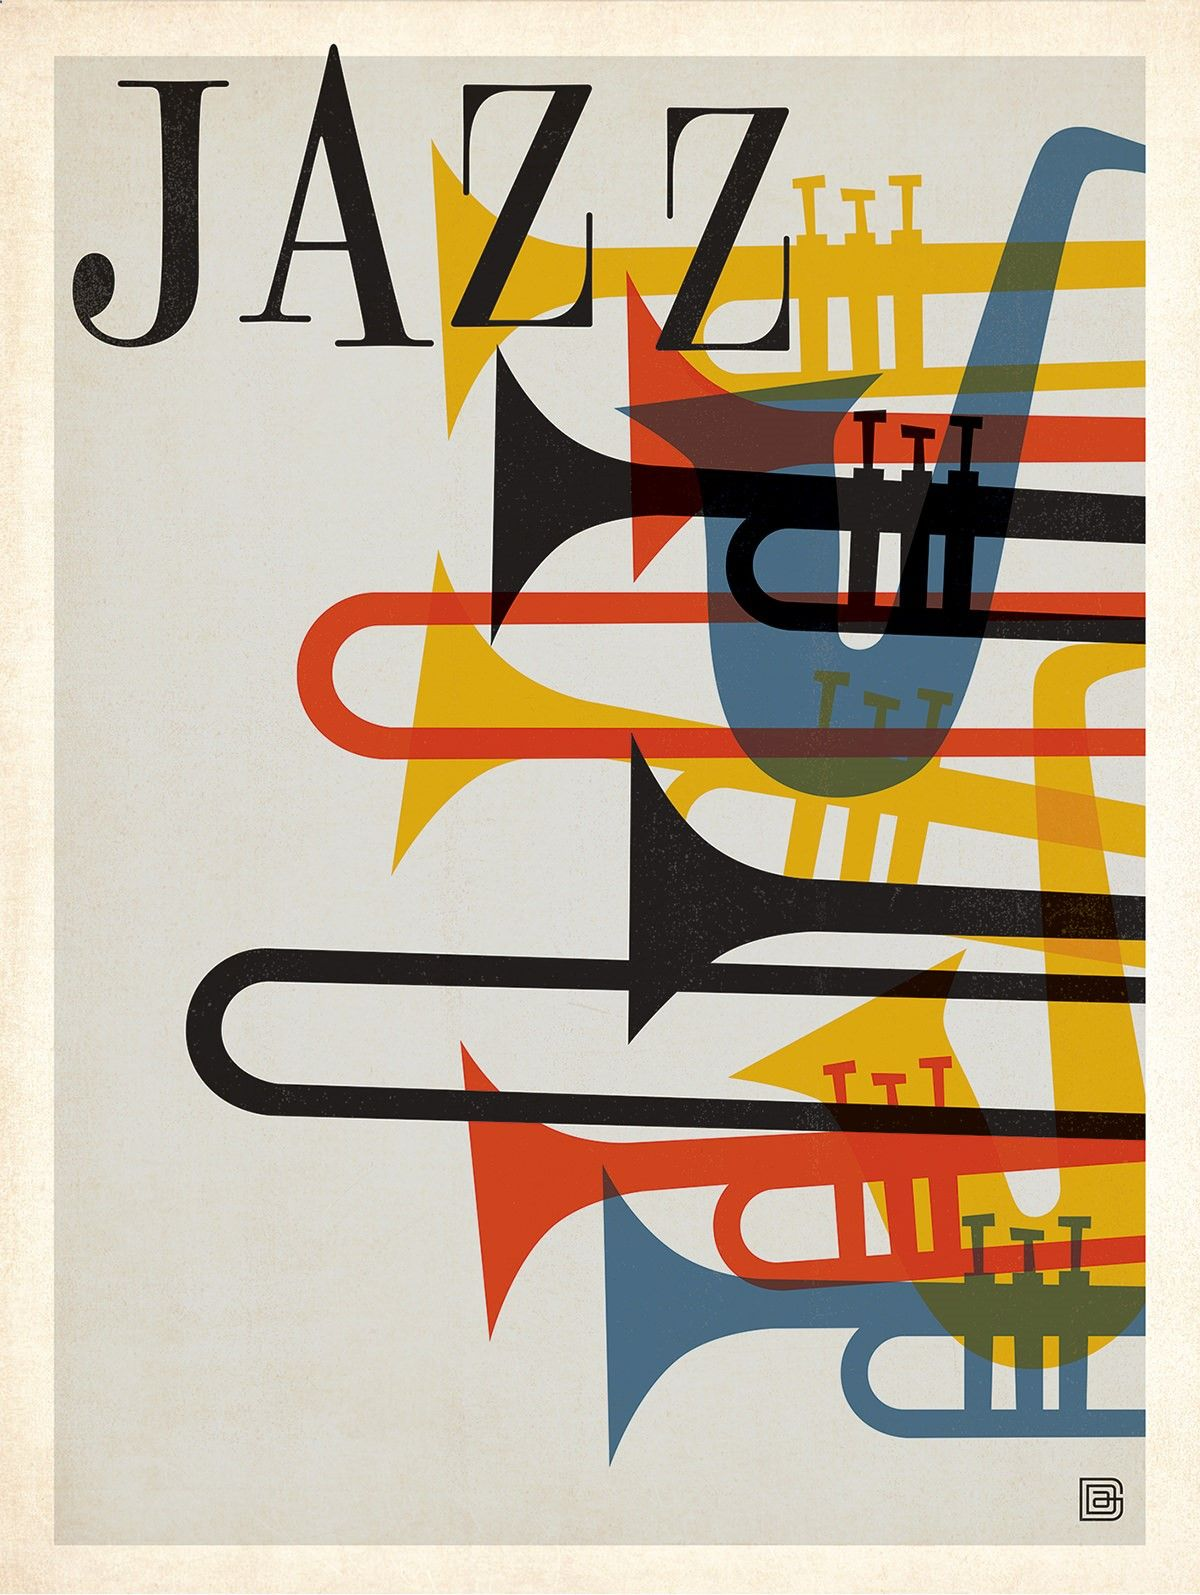 Mid-Century Jazz Poster - Inspired by classic album cover art from ...